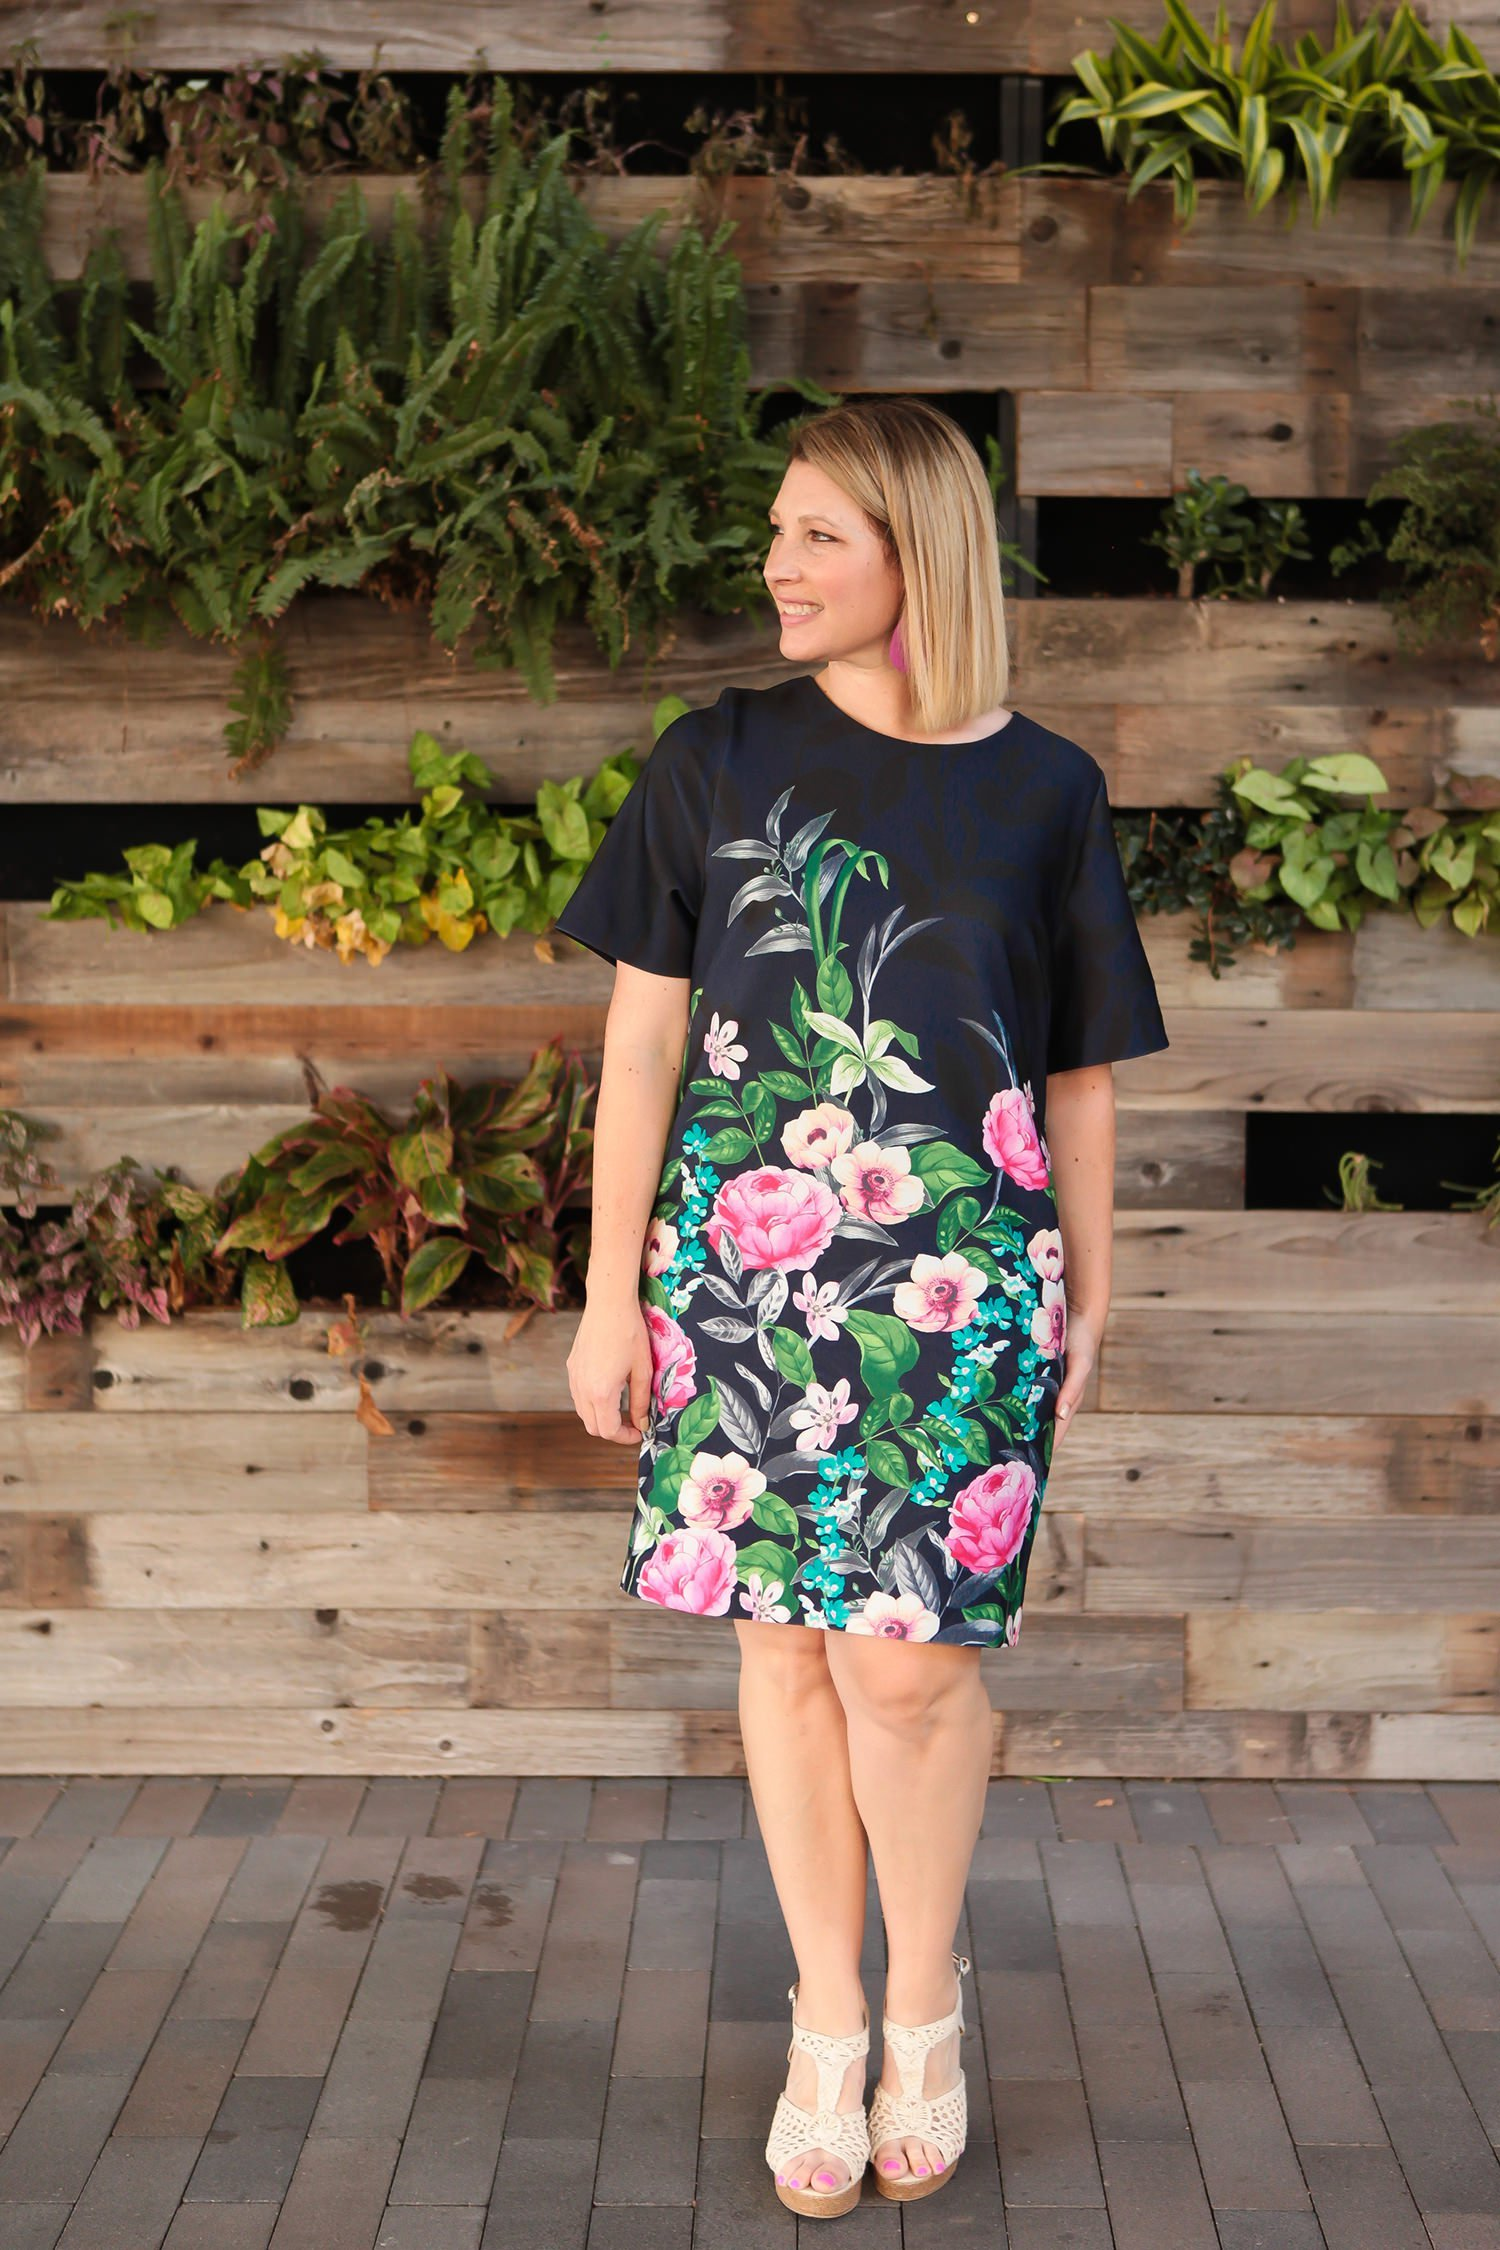 Le Tote: Don't you love this floral dress from Le Tote? Lifestyle blogger Lipgloss and Crayons shares her top spring dress pick and why she loves this clothing subscription box service!